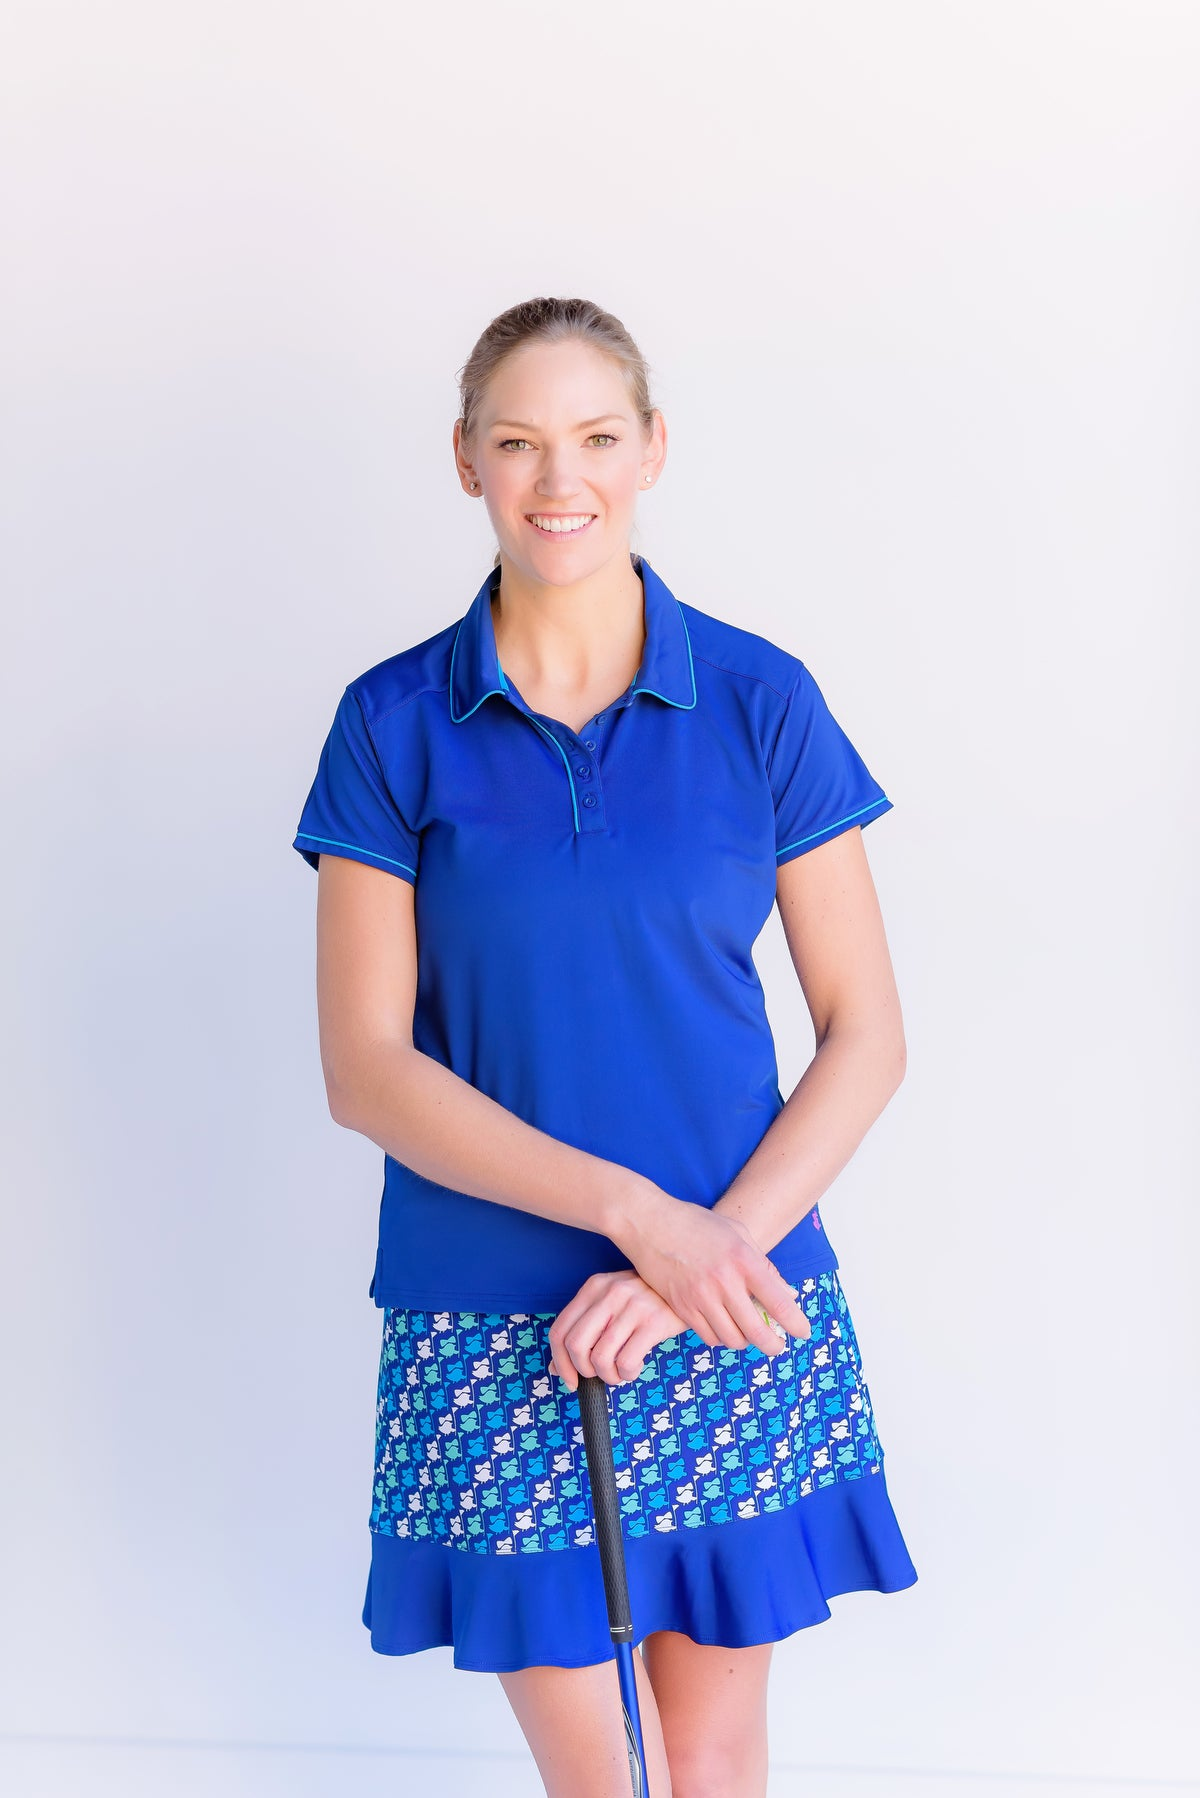 Fairway Flounce Skort - Birdies and Bows